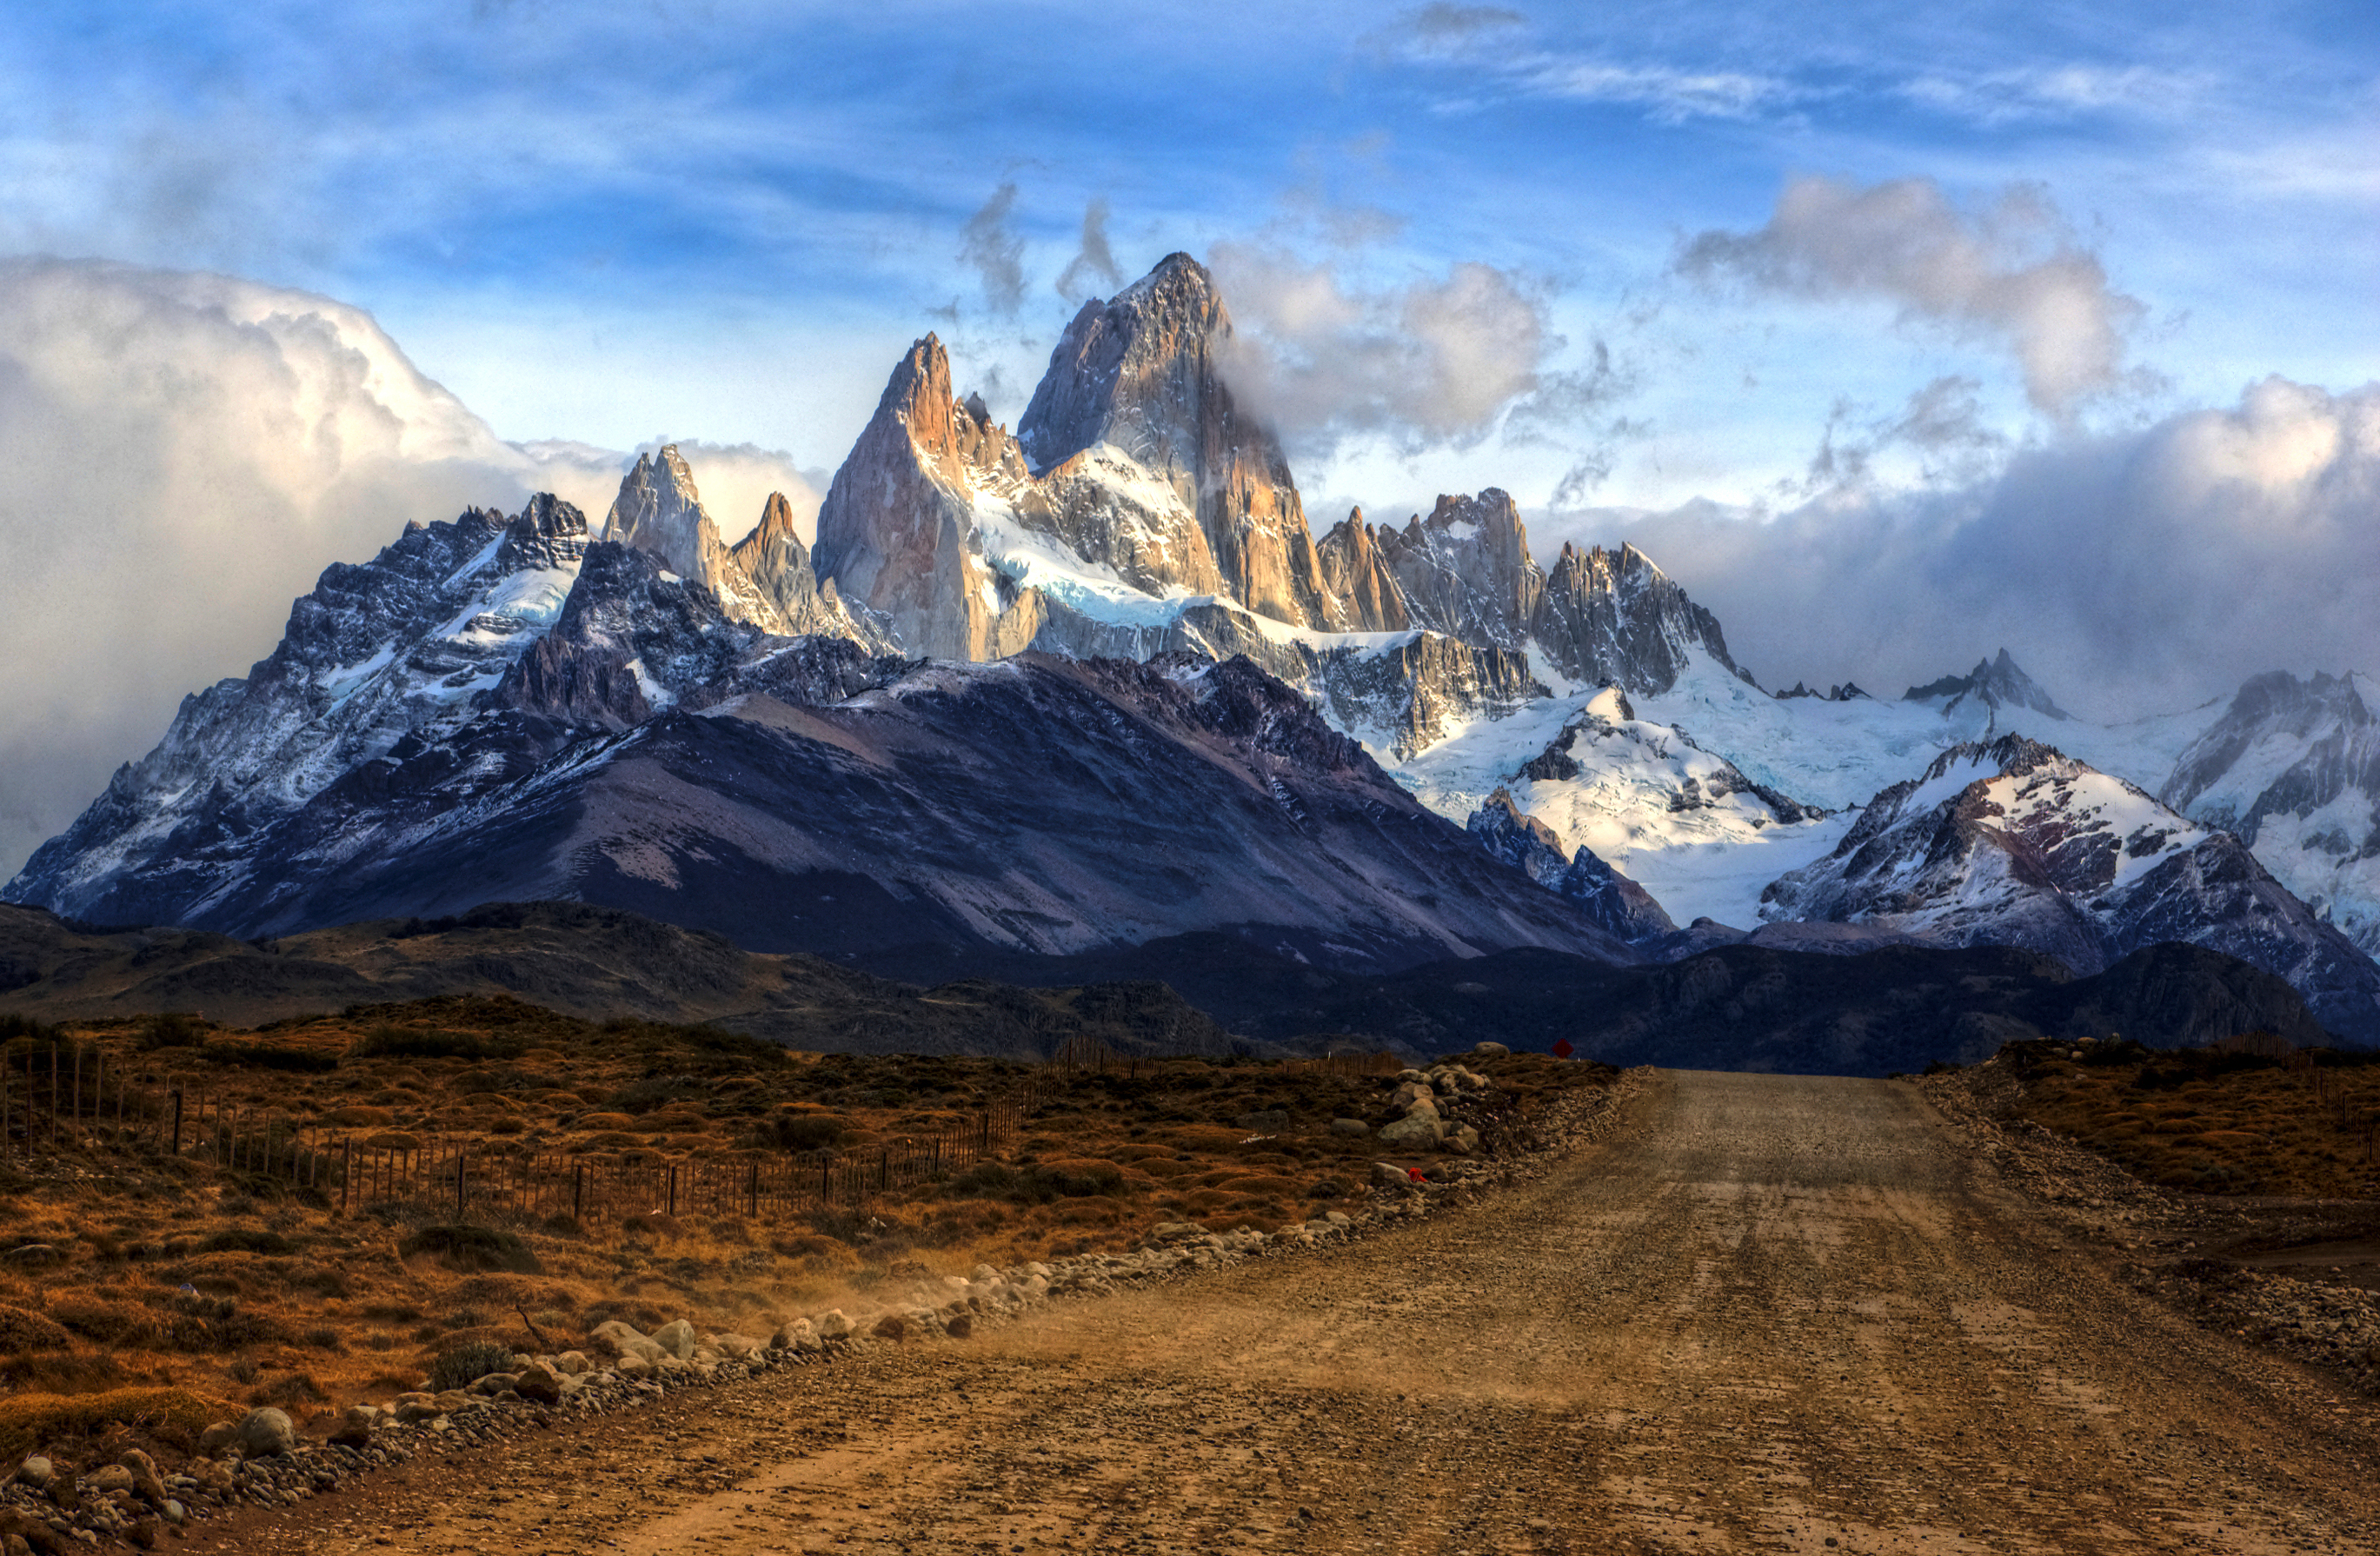 Leserfoto: Goodbye Fitz Roy